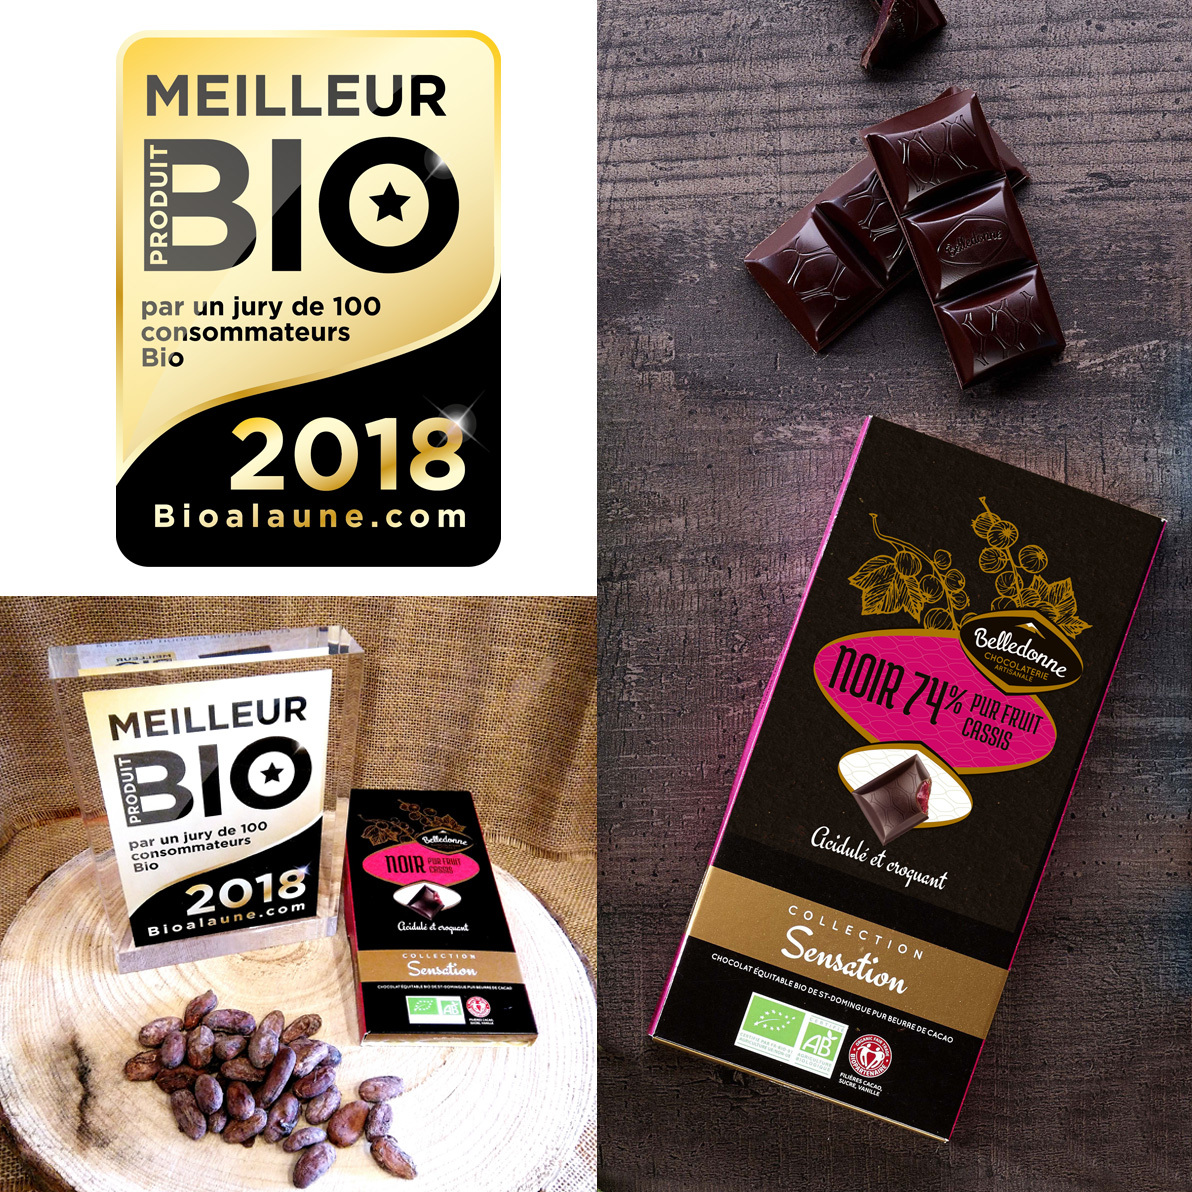 Illus meilleurs produits bio 2018